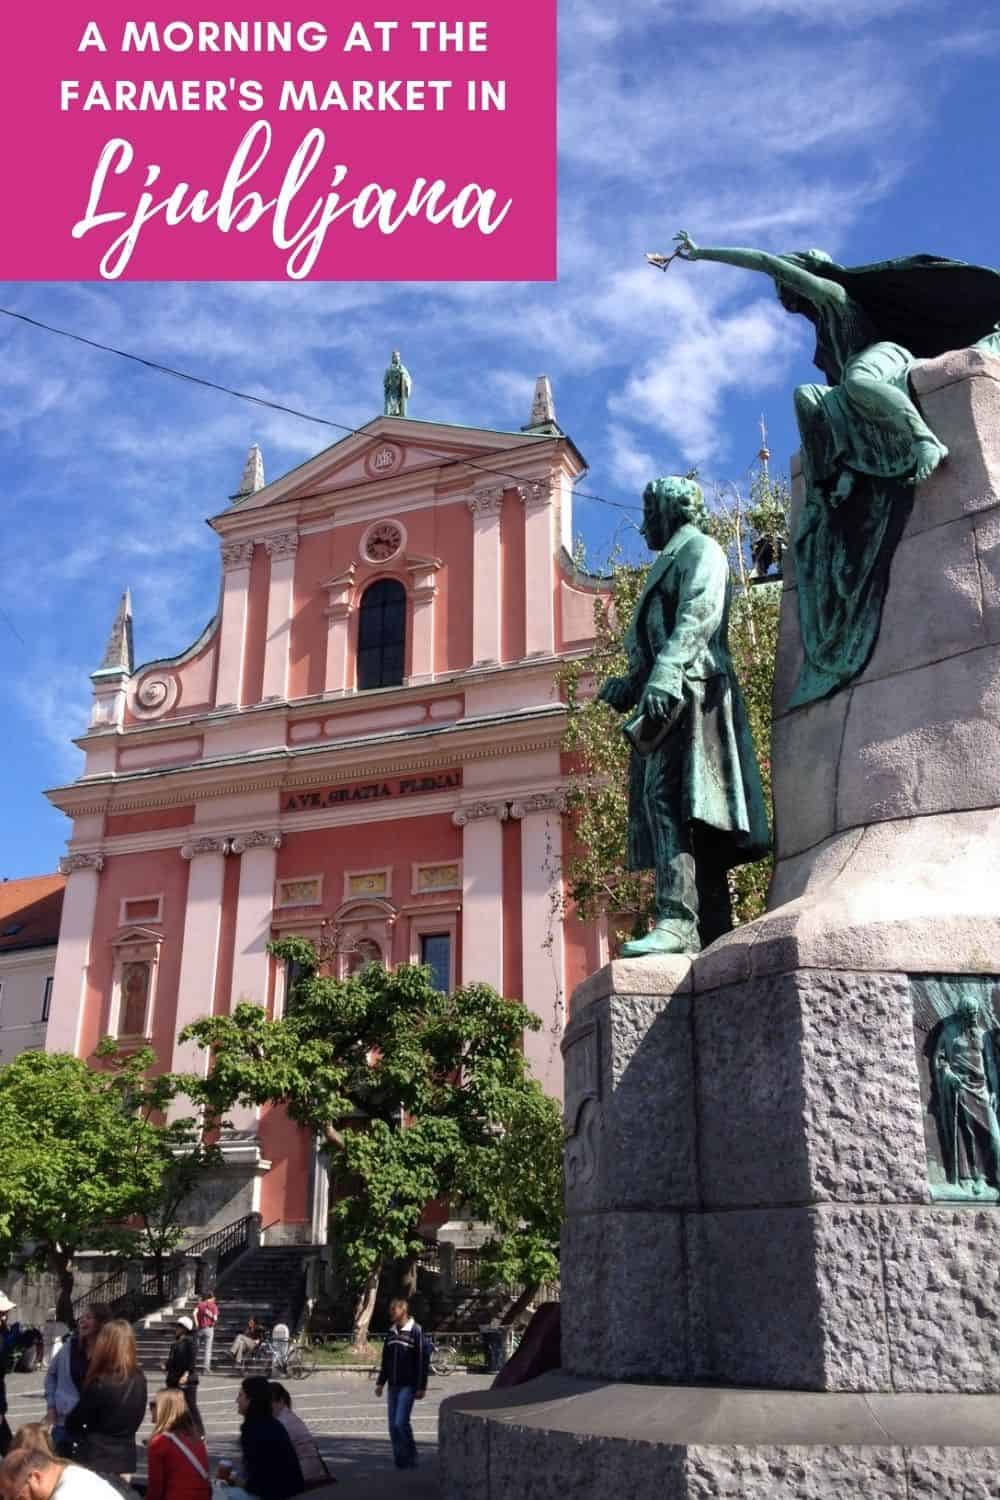 A Perfect Morning in Ljubljana, Slovenia, at the Farmer's Market | This gorgeous, vibrant city is worth exploring, and the Central Market is the perfect way--one of the biggest farmers markets I've ever seen. What to do in Ljubljana, tips for your trip to Slovenia, Ljubljana itinerary ideas #slovenia #ljubljana #balkans